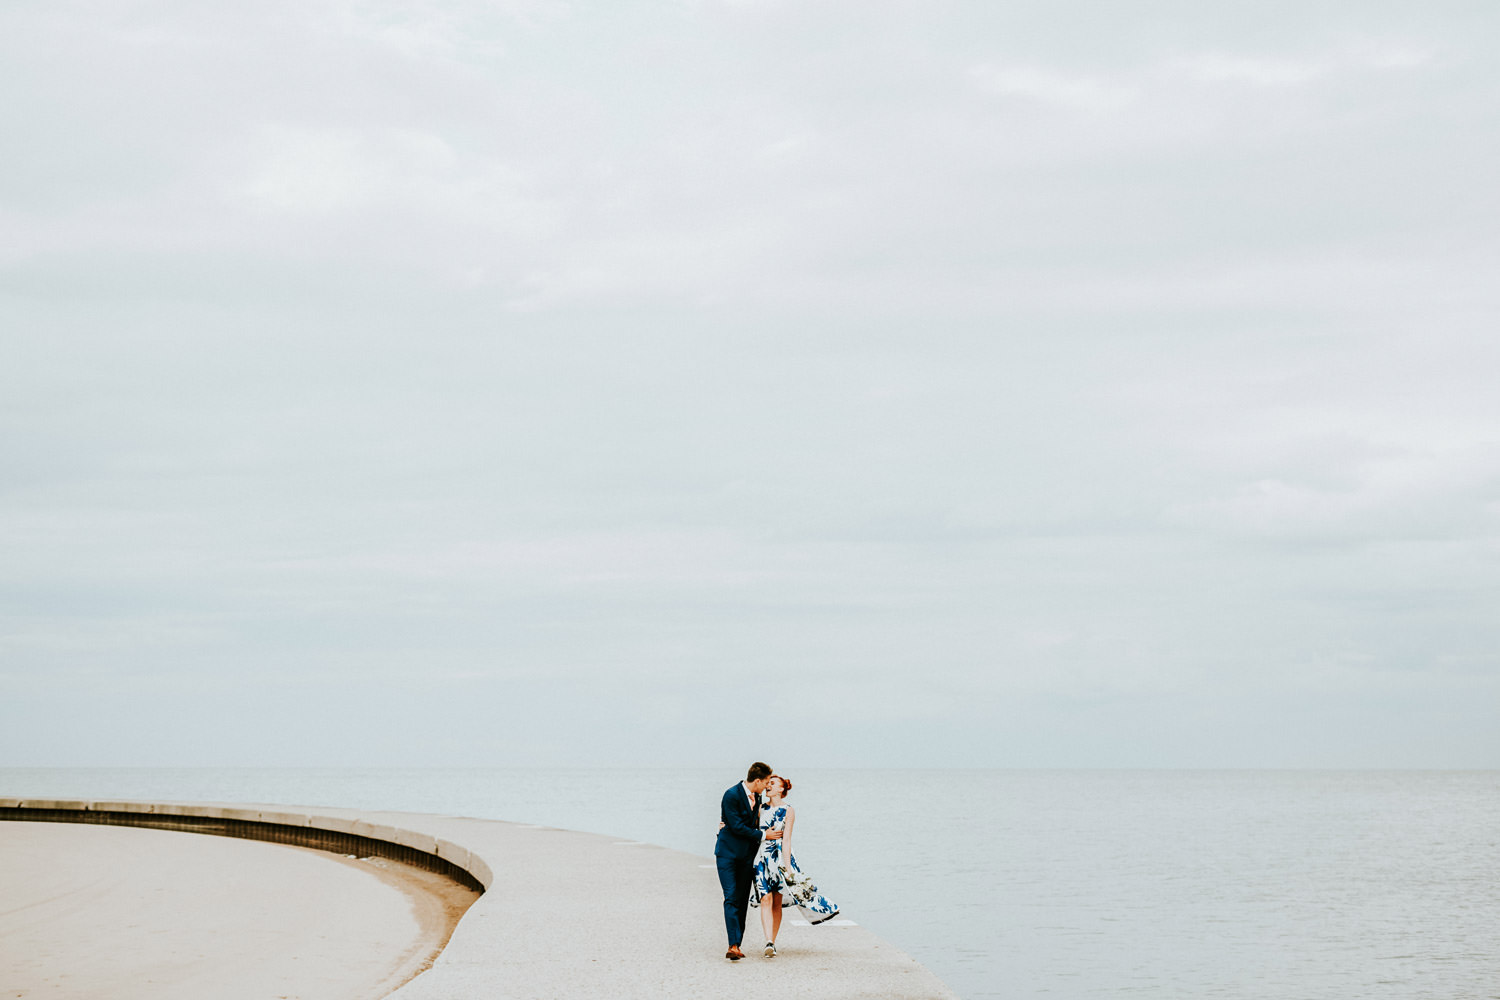 Chicago elopement photographer. Bride and groom captured at North Beach during their elopement day